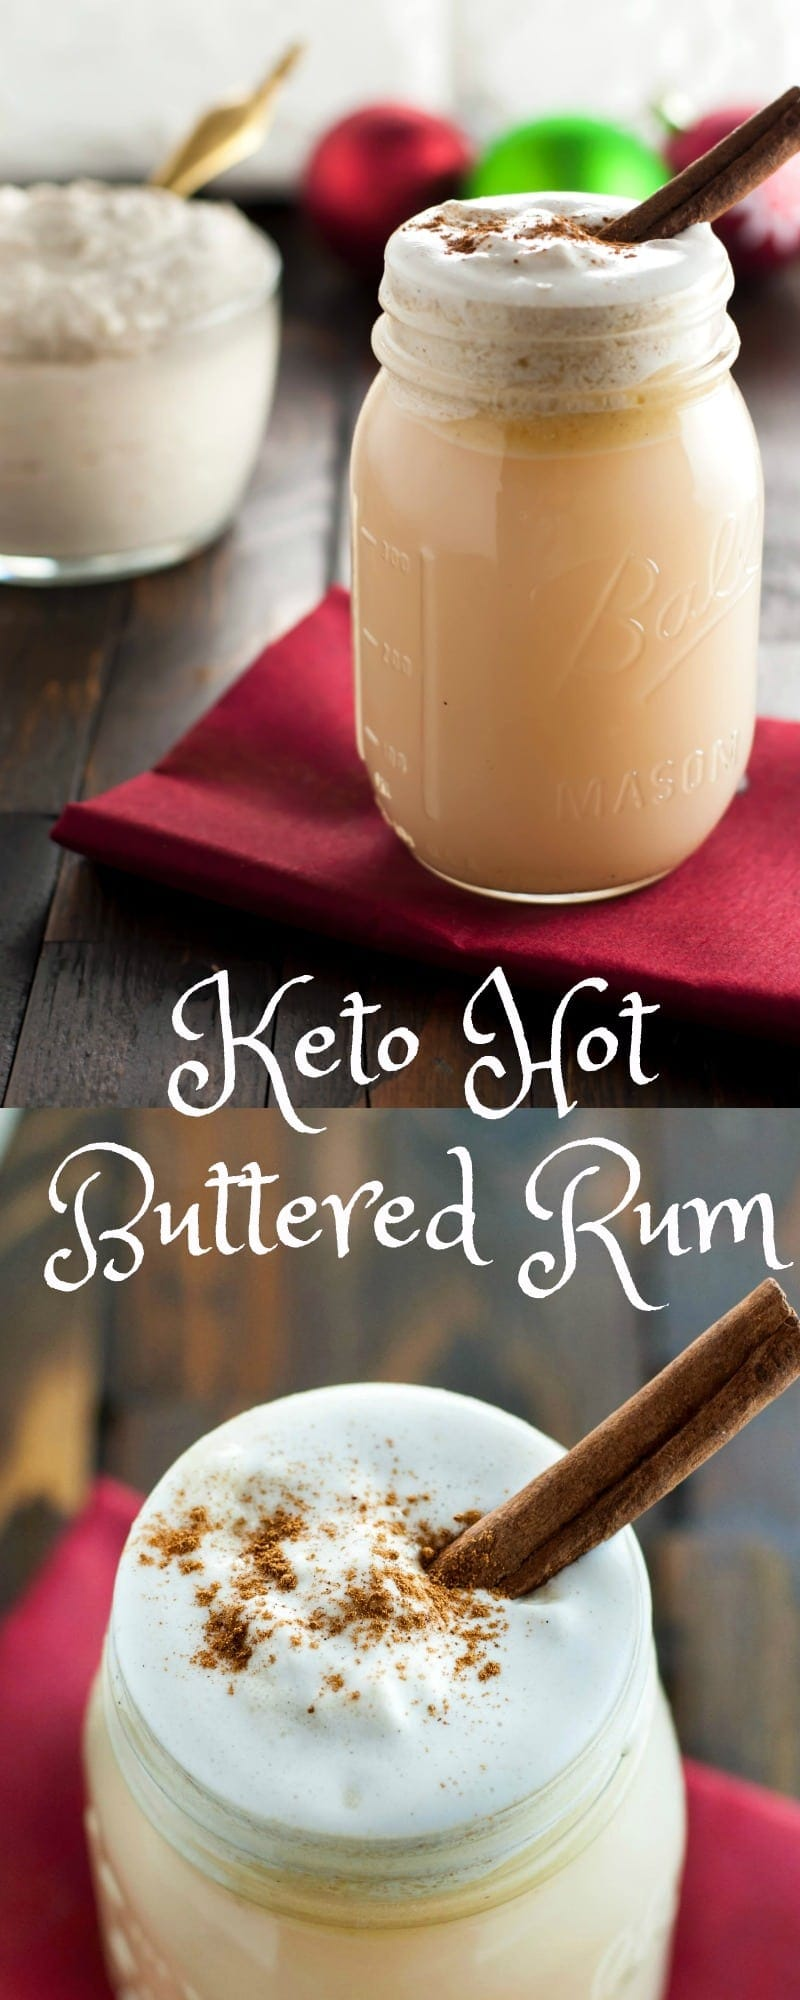 Keto Hot Buttered Rum - Low Carb, Gluten Free | Peace Love and Low Carb